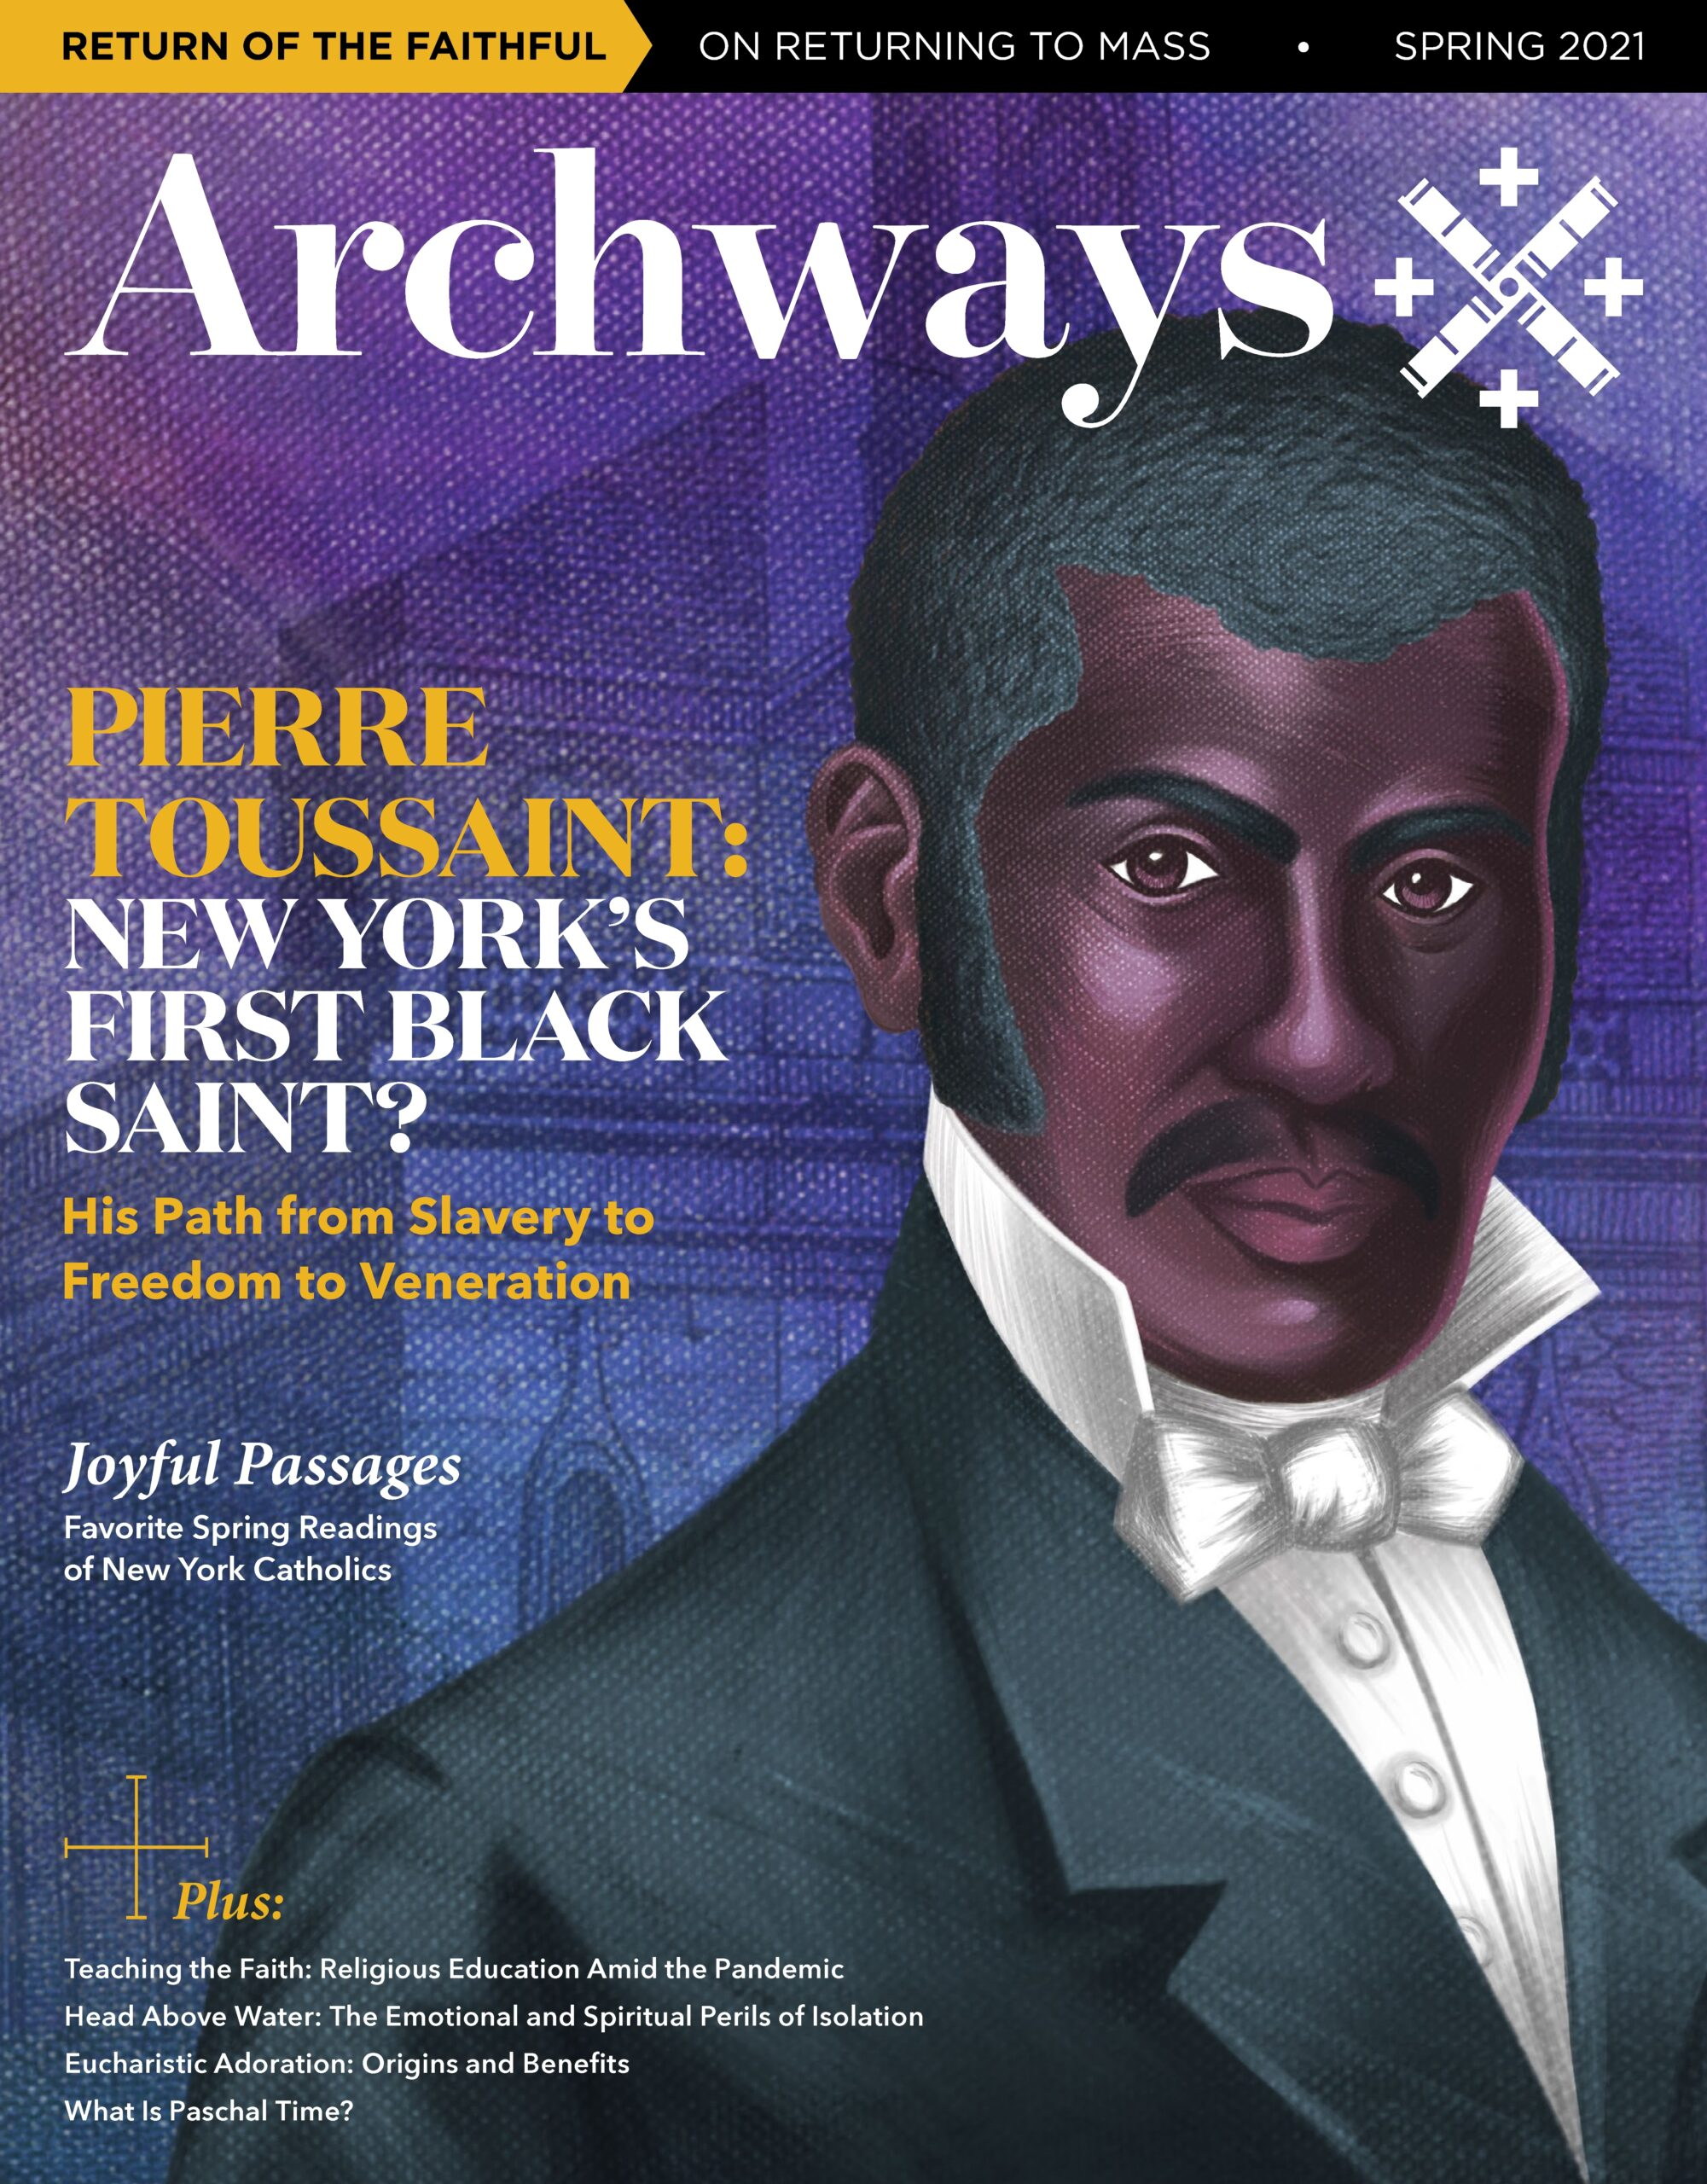 Archways Spring 2021 Issue is Here - Archdiocese of New York